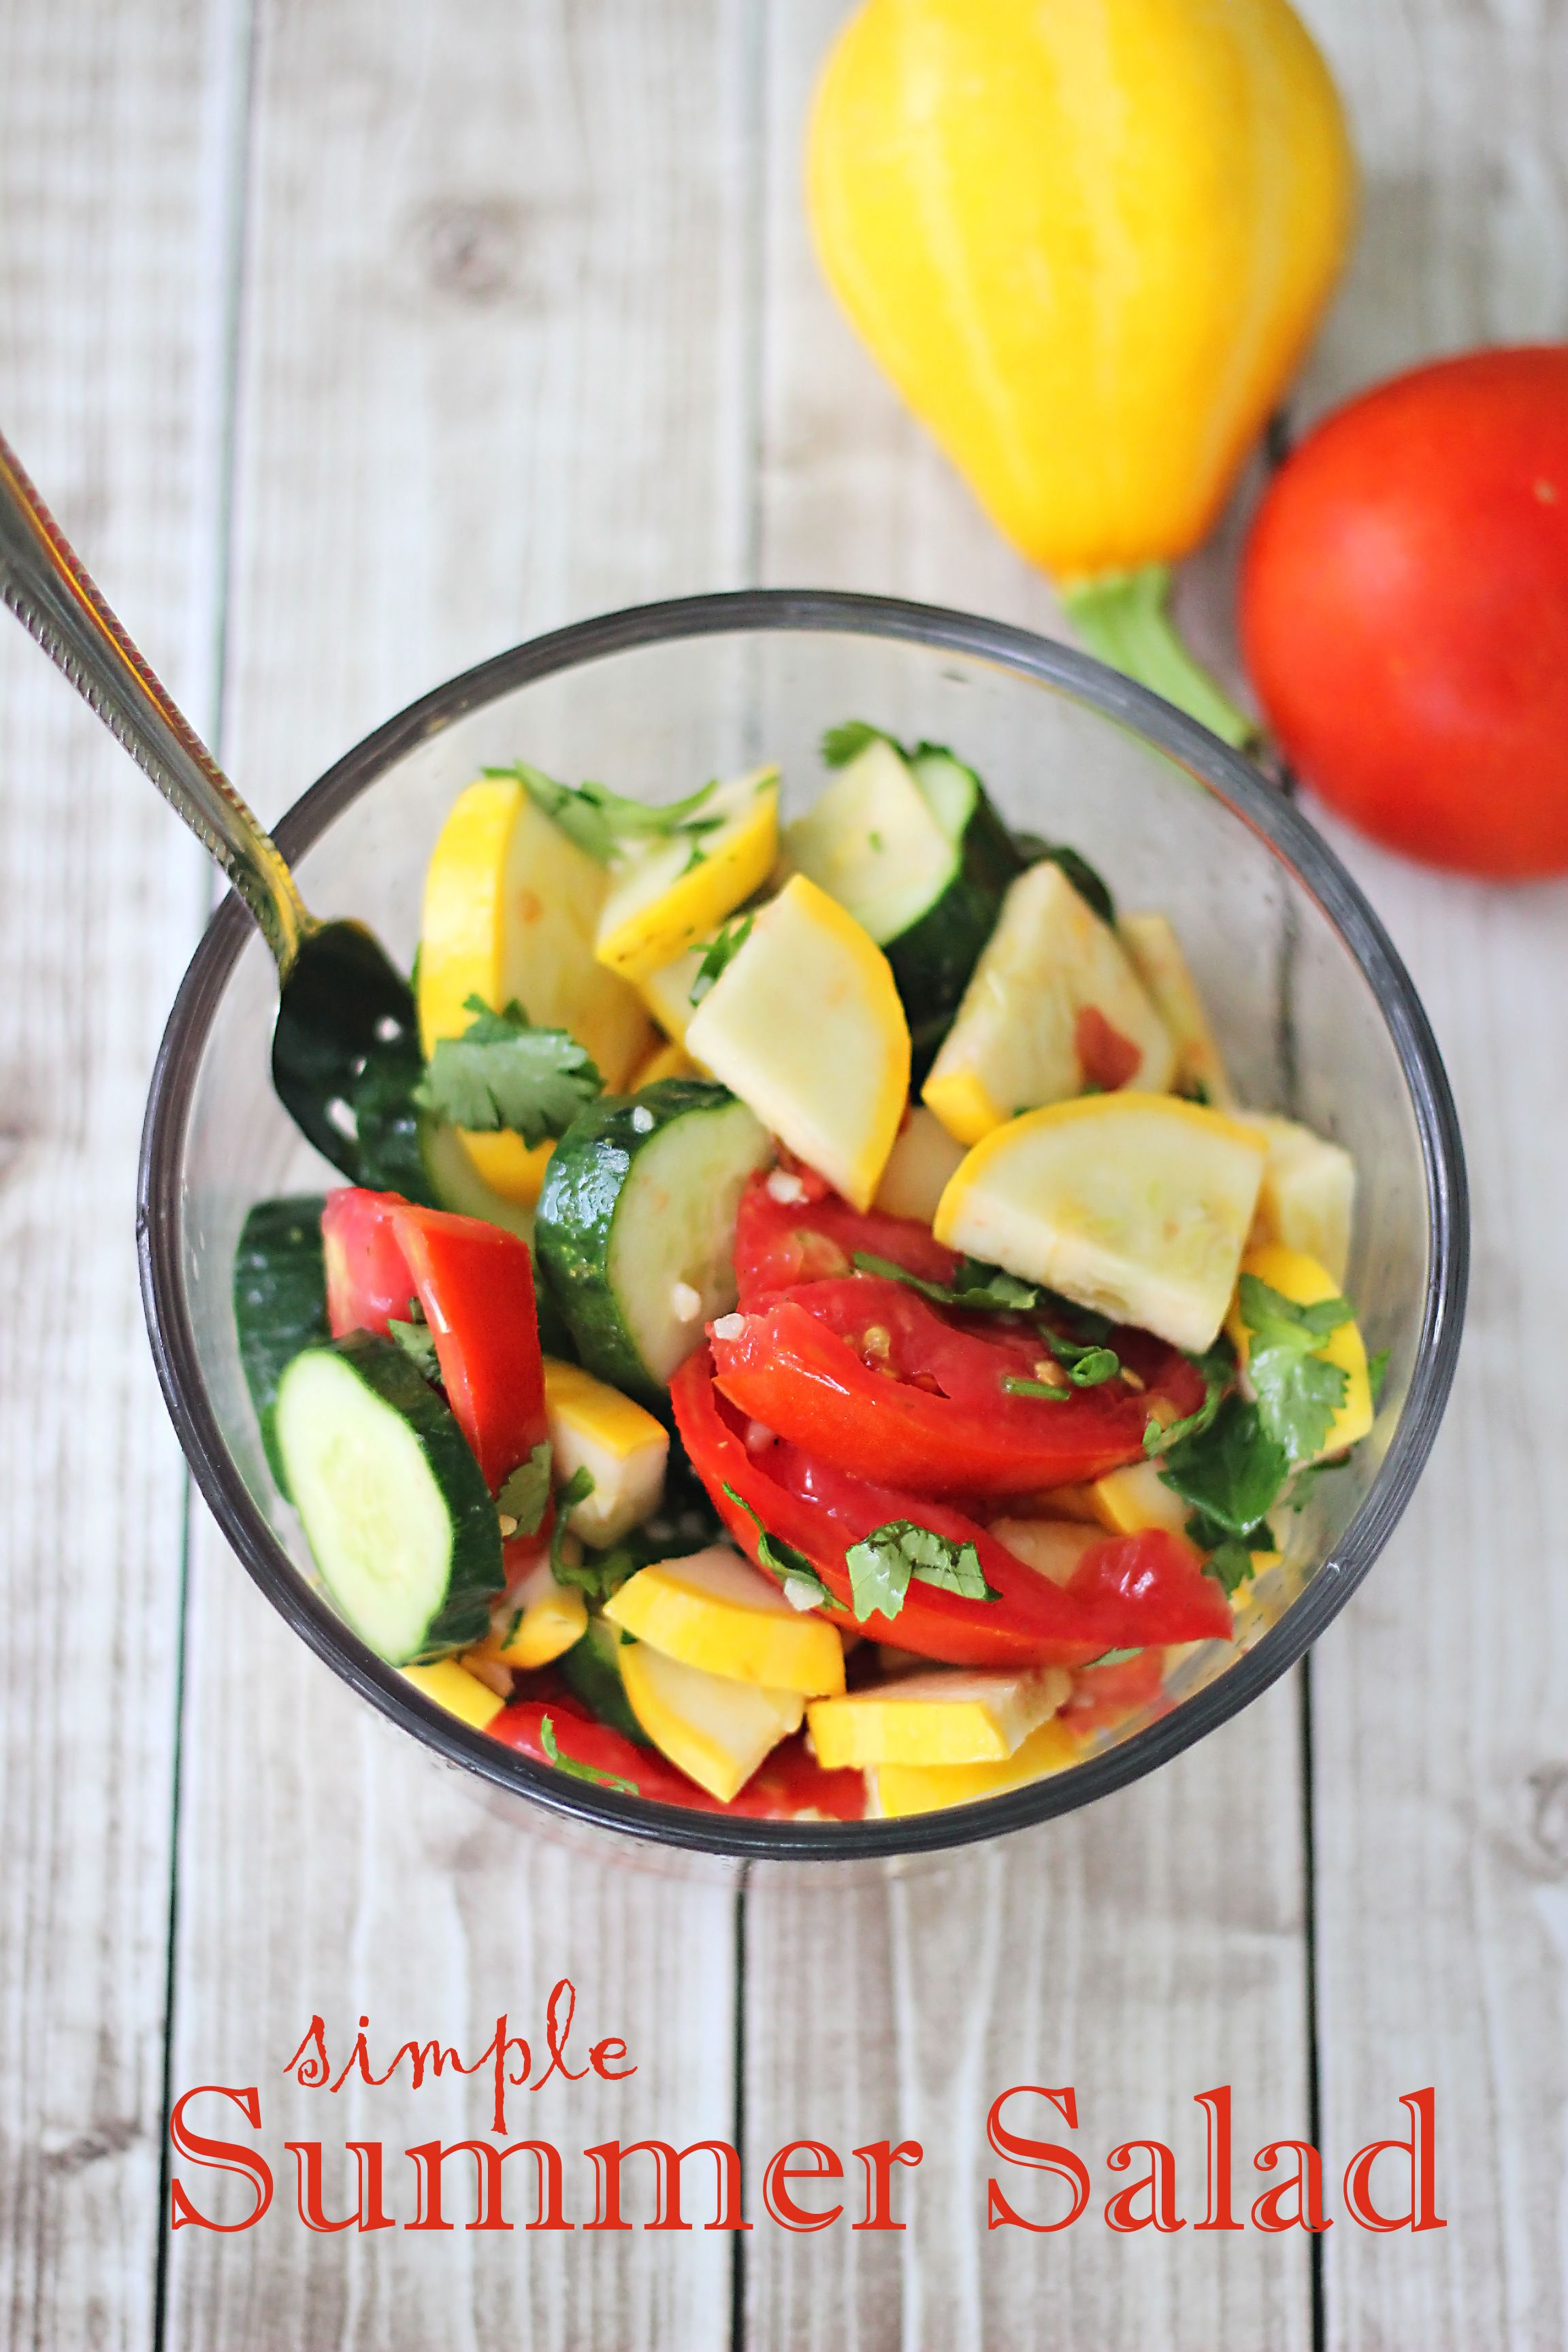 Simple Summer Salad #EasyCookingWithPam - Sweet T Makes Three 1 cup diced tomatoes 1 cup sliced summer squash or zucchini 1 cup sliced cucumber ¼ cup chopped cilantro or basil 1 Tbsp minced garlic PAM Purely Olive Oil 3 Tbsp vinegar (rice or apple cider are good choices) salt and pepper to taste